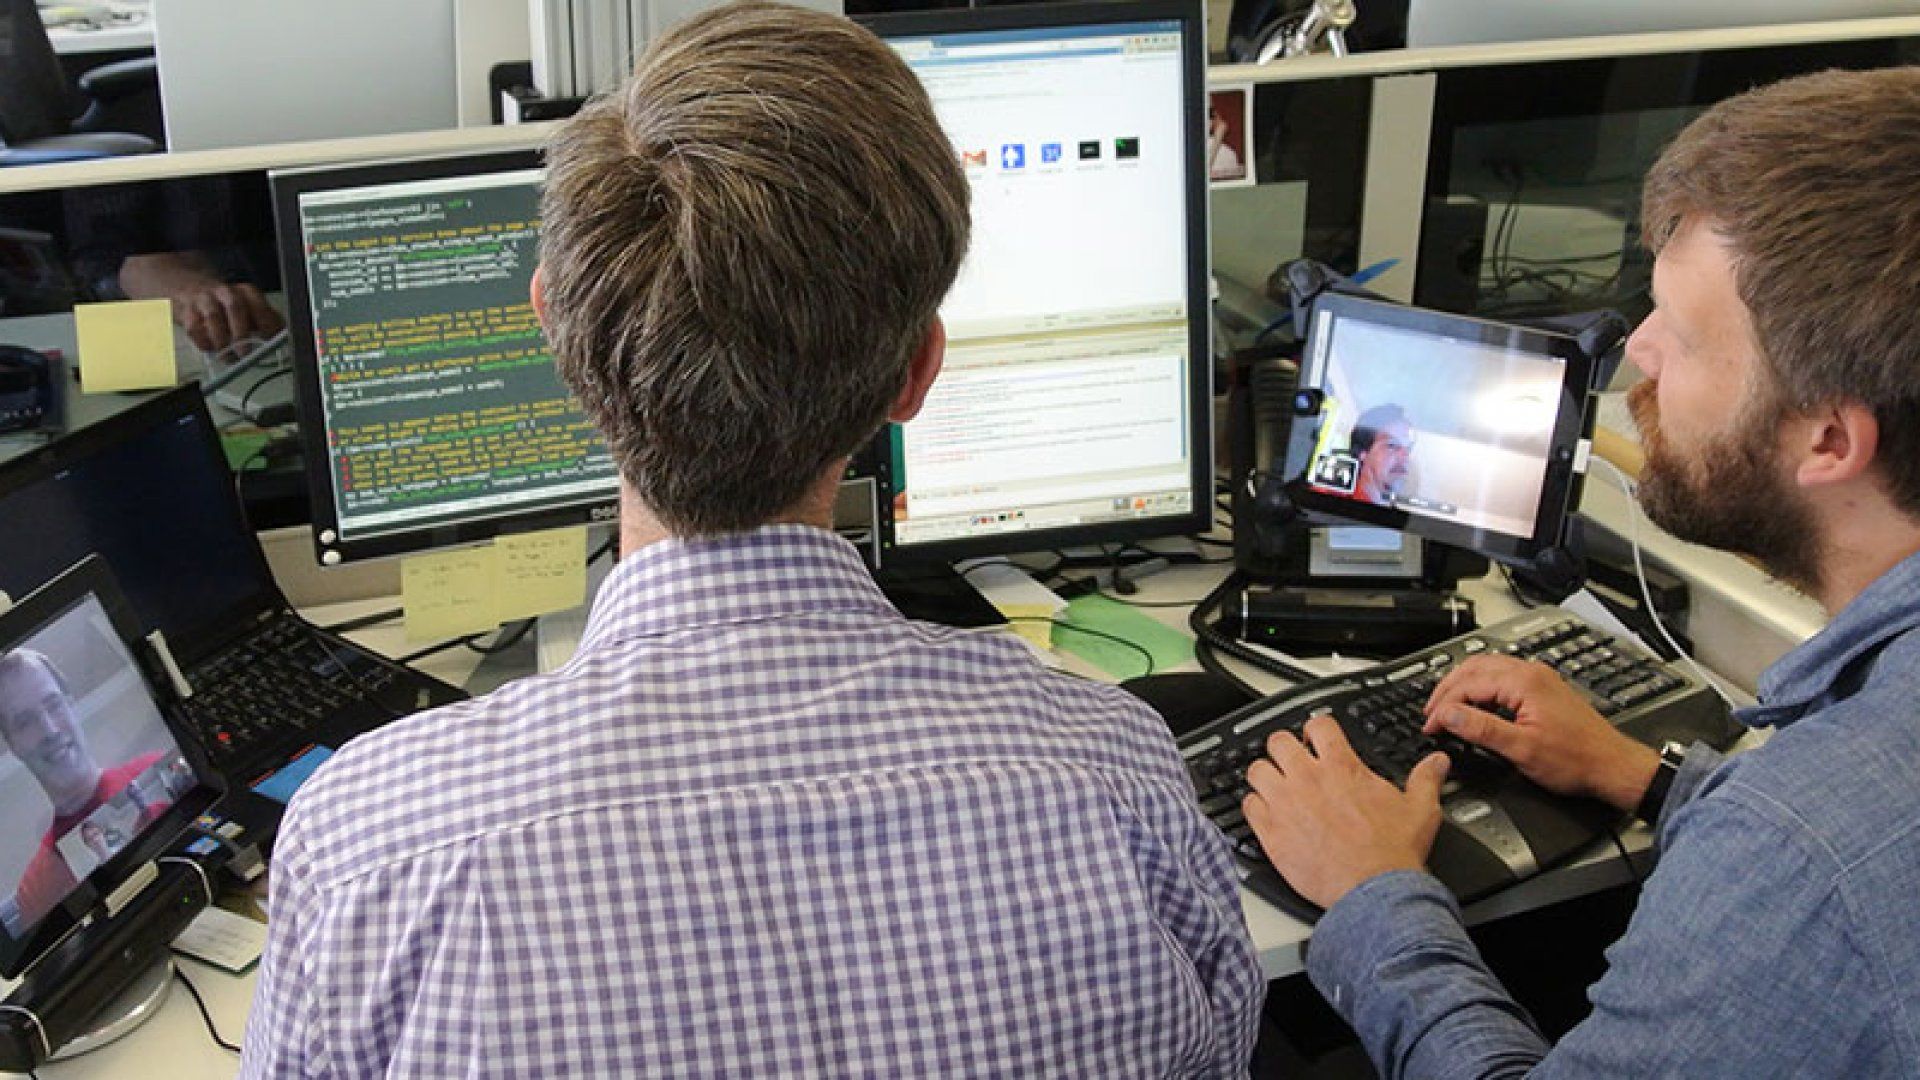 An All-Day Video Conference for Remote Workers: Crazy or Brilliant?